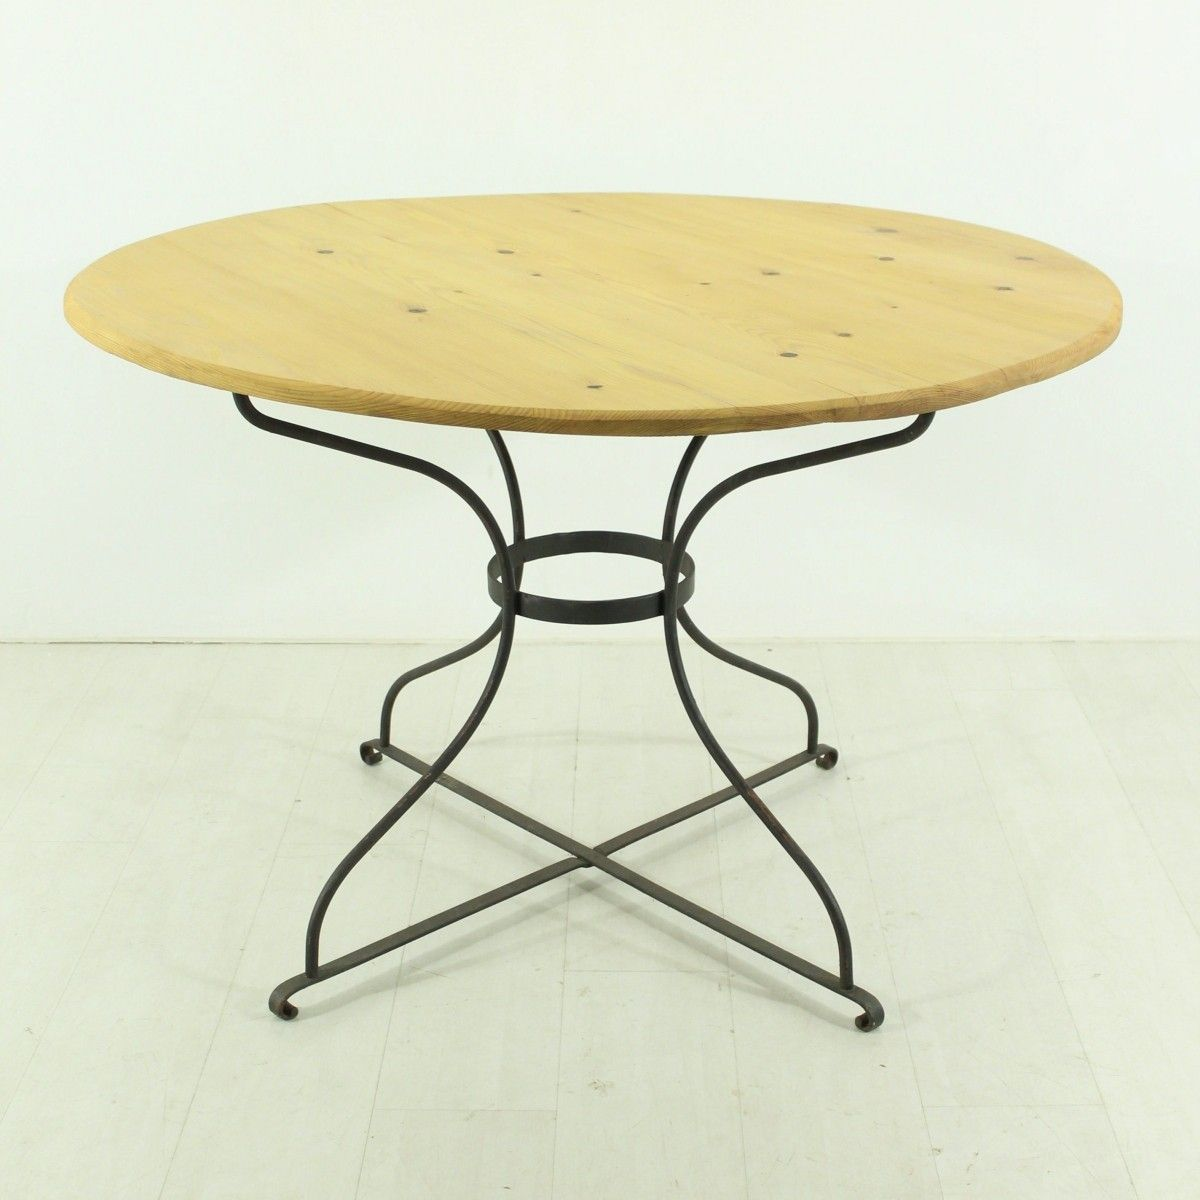 Vintage round dining table with a metal base for sale at Metal table base